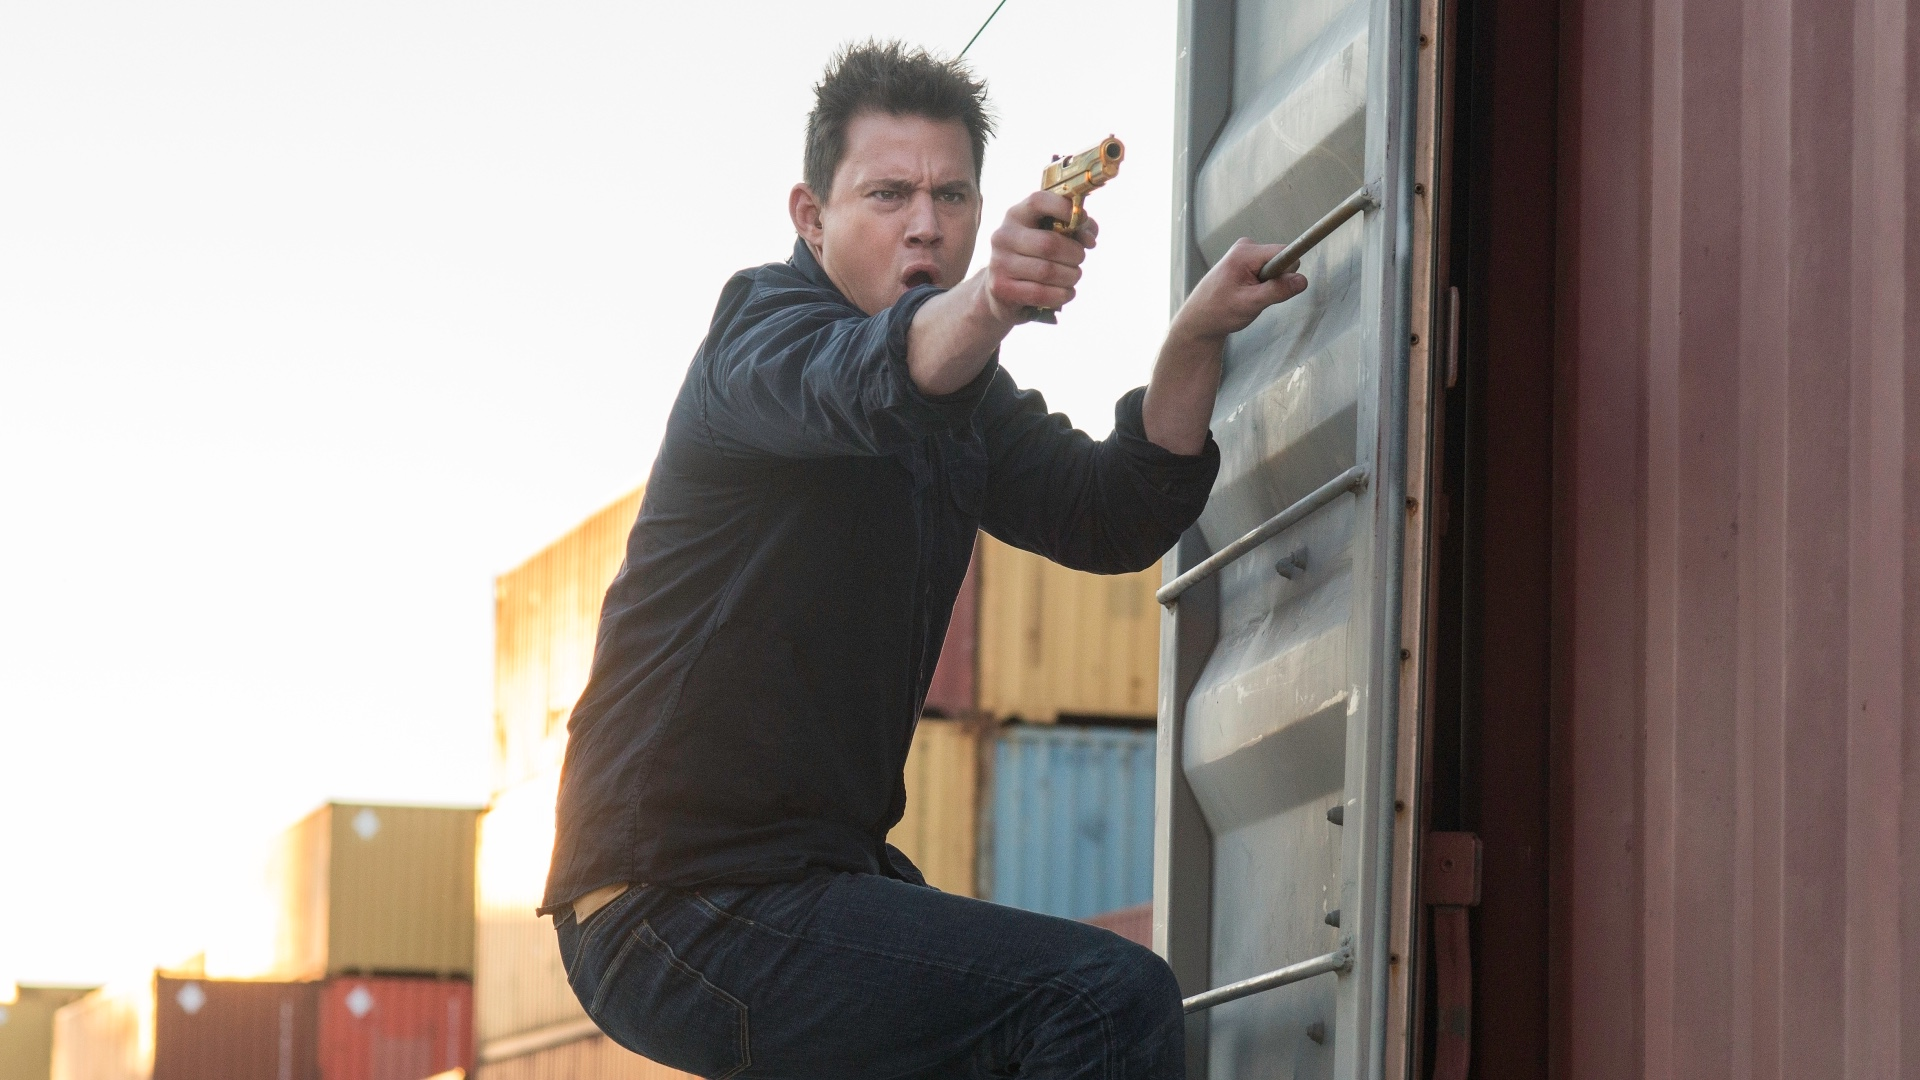 689f3d051fd0 Channing Tatum and LeBron James Are Producing an Action Comedy Called  PUBLIC ENEMY — GeekTyrant